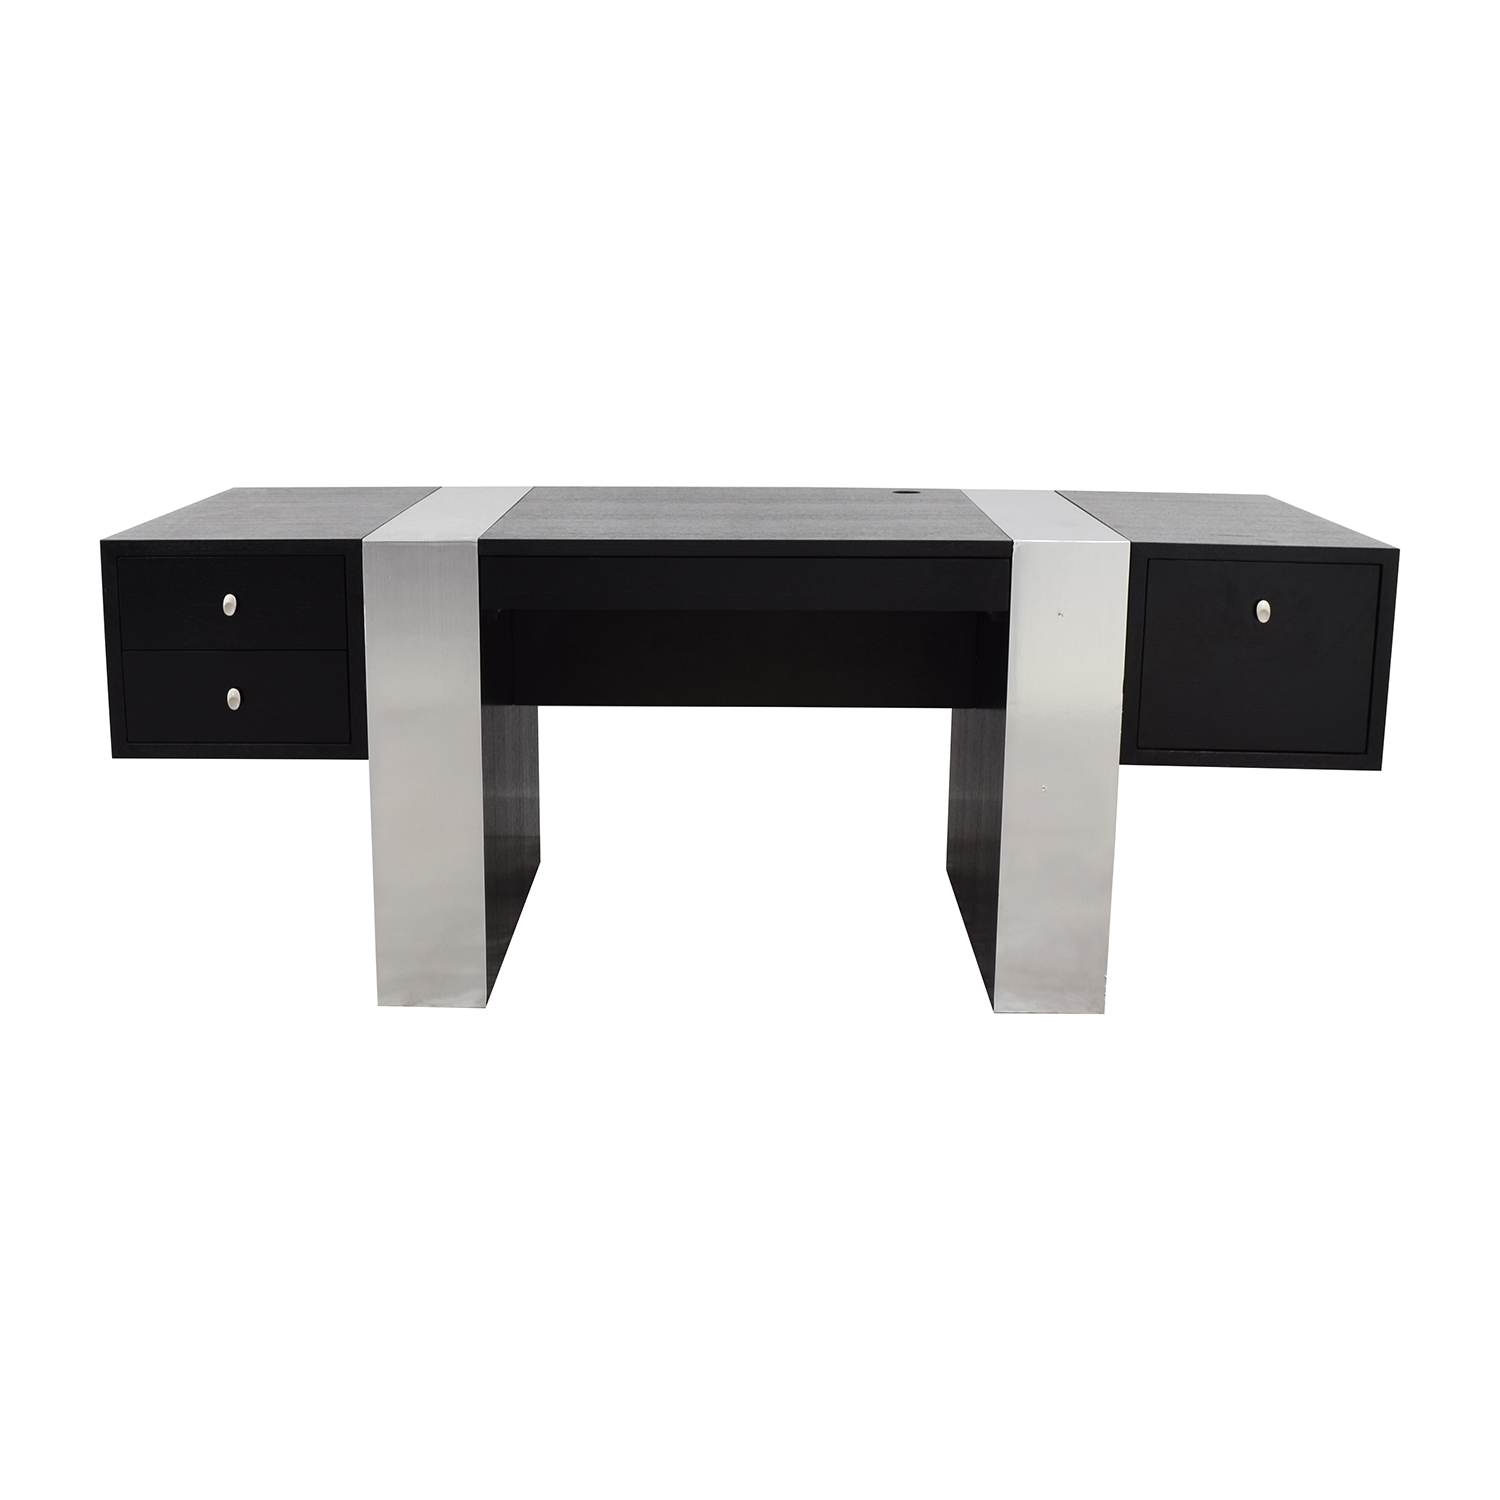 68 off ikea ikea galant corner desk tables for In mod furniture